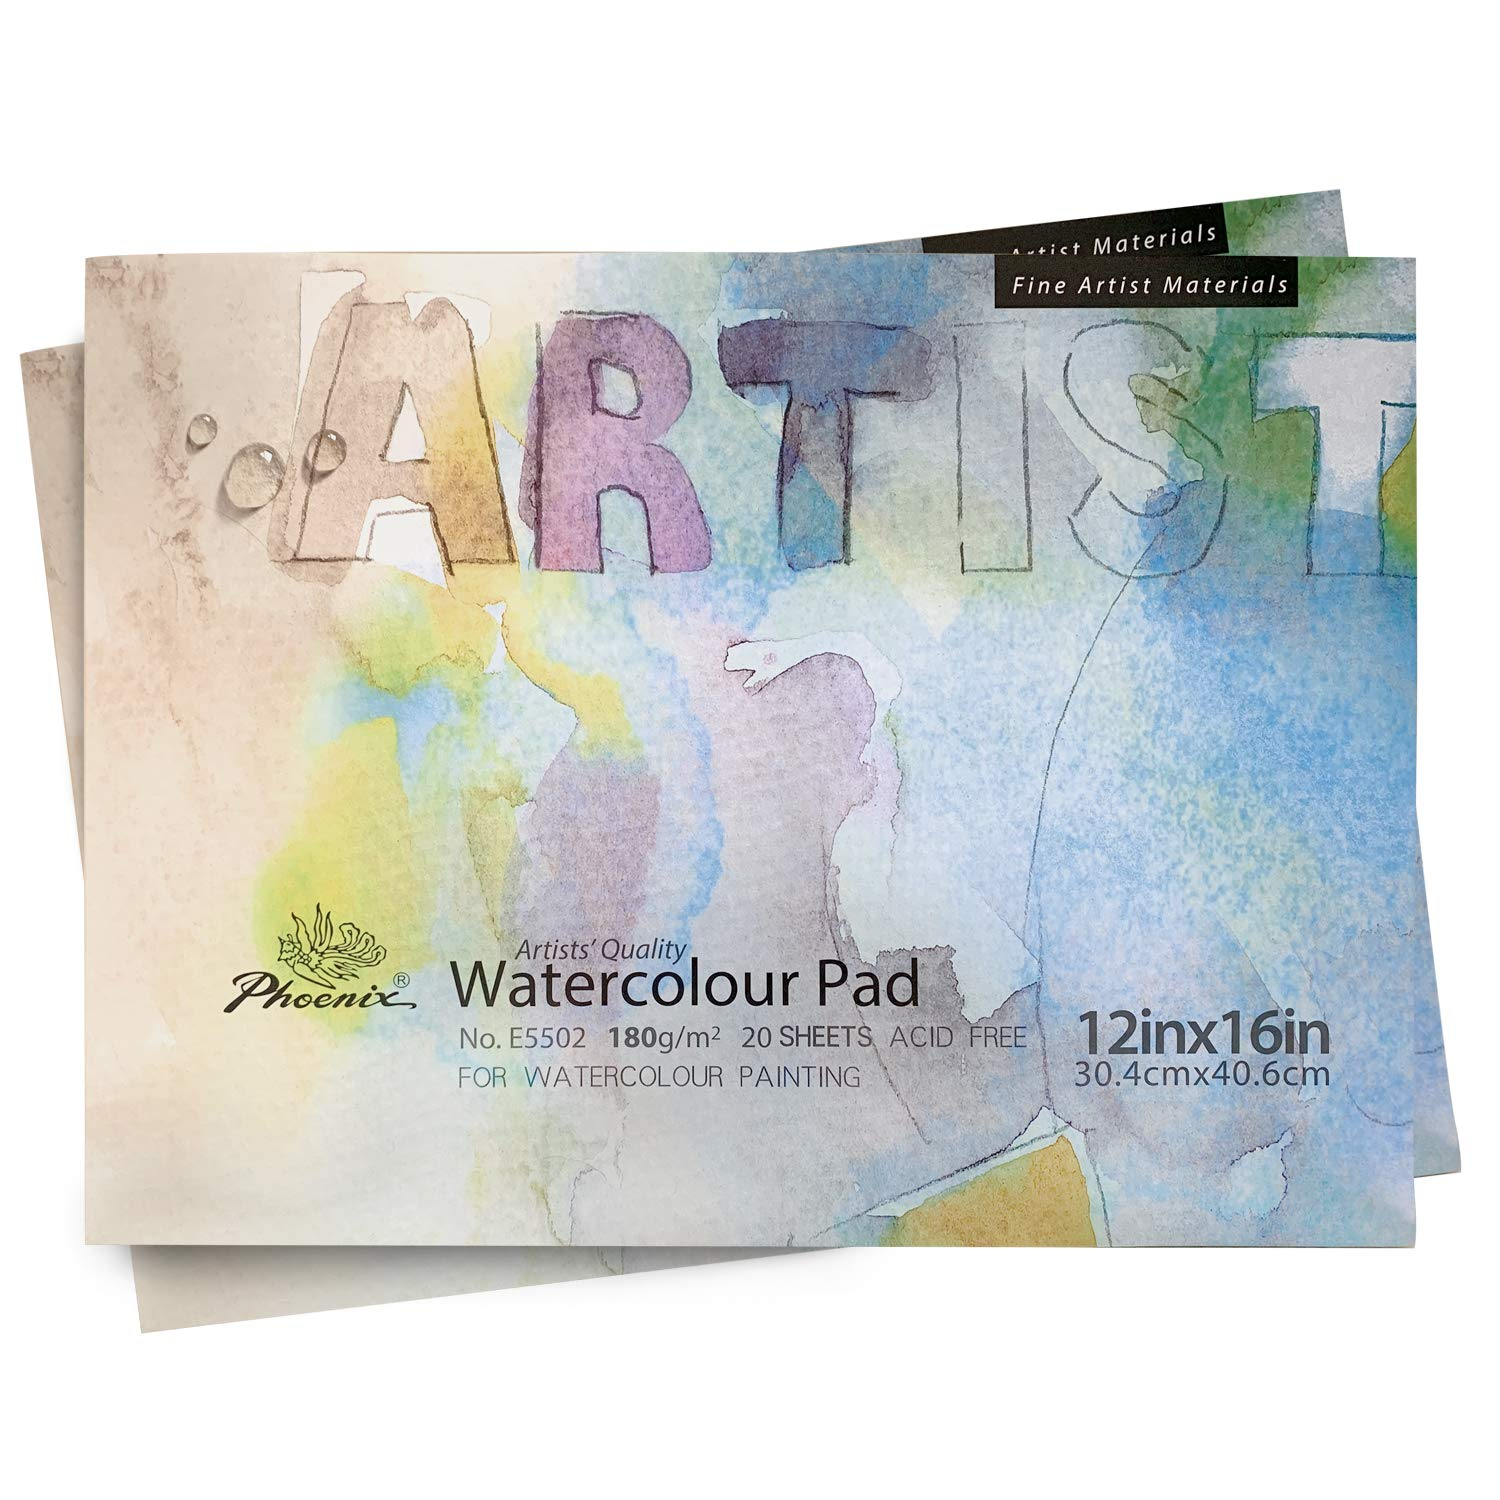 1//3 Inch Thick Art Pad PHOENIX Watercolor Paper Pad Cold Pressed Painting Paper for Water Soluble Paints 8x10 Inch//2 Pack